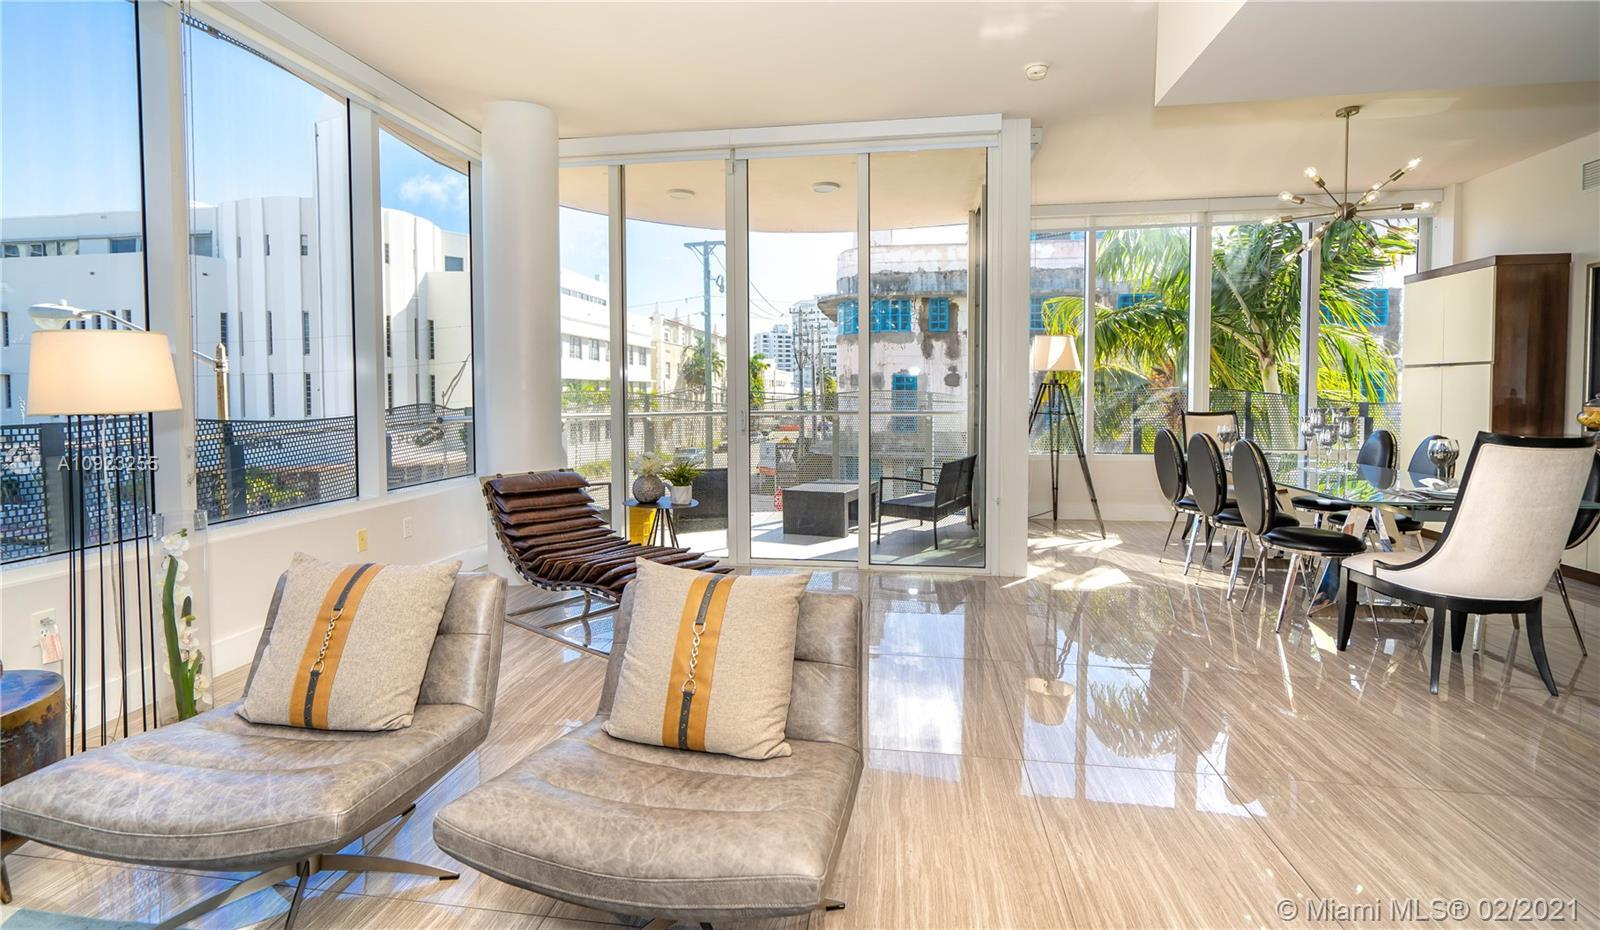 Lifestyle ~ Dual Luxury ~ Style...The largest luxury condo available on Miami Beach - less than $2MI